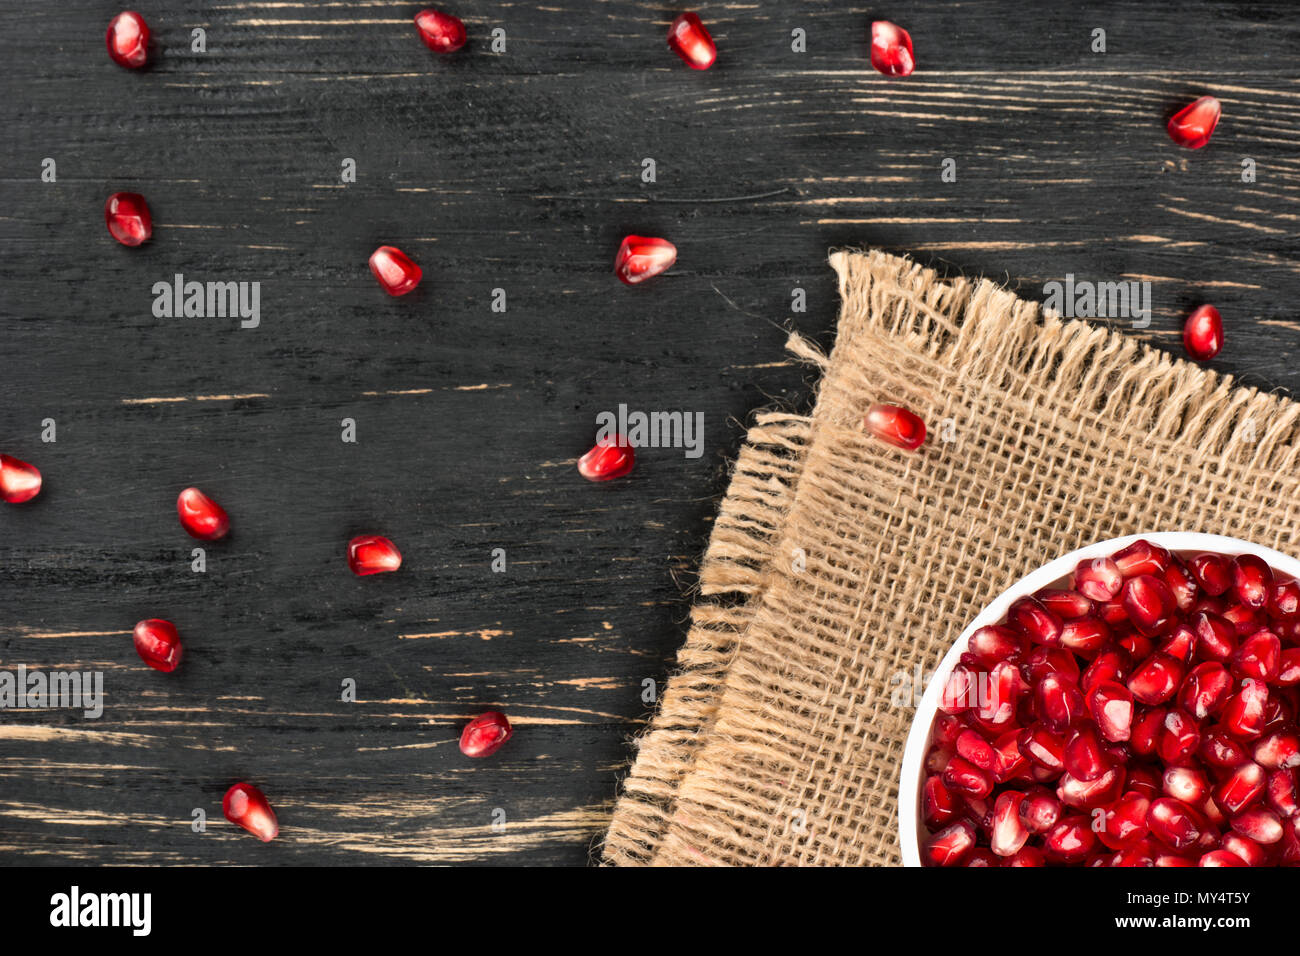 Part of the bowl with pomegranate seeds on sackcloth and table, top view - Stock Image